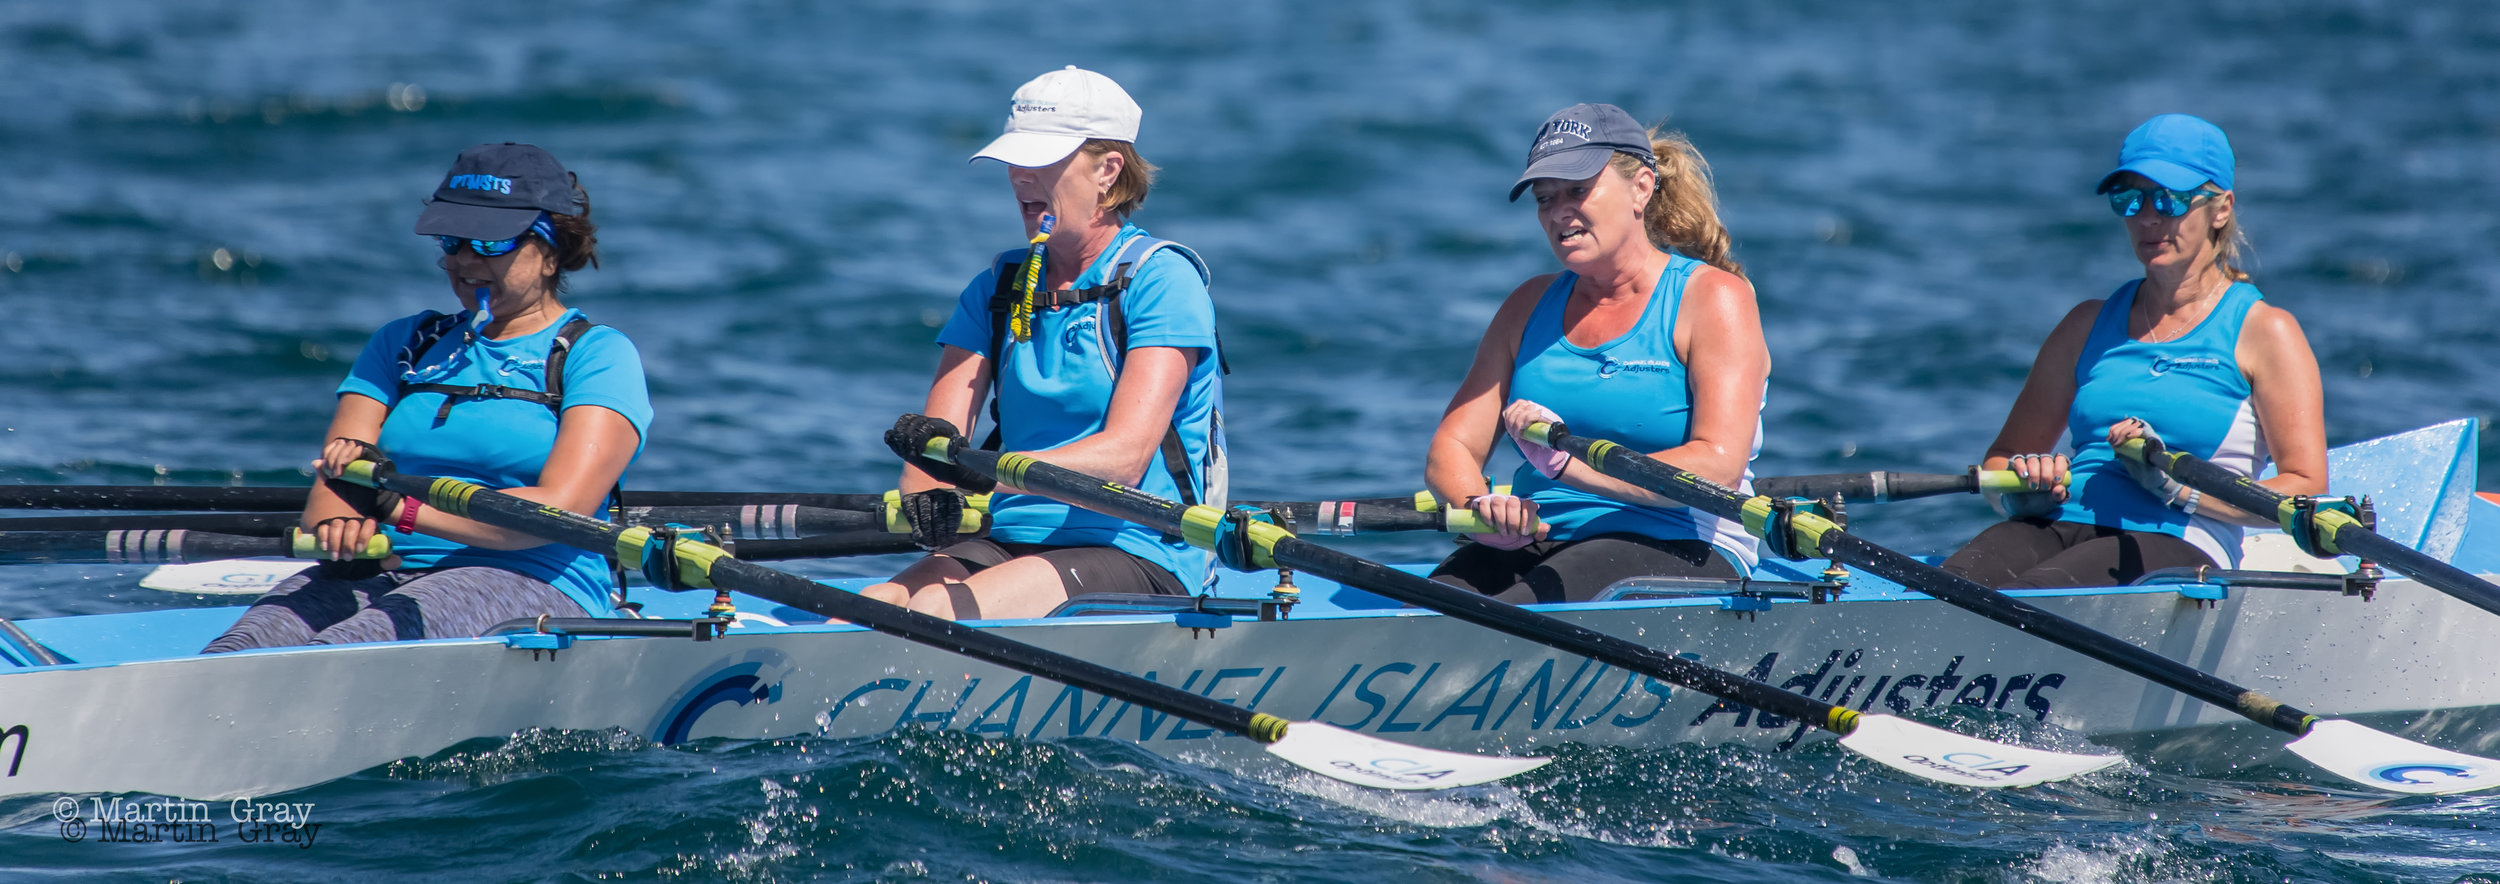 Guernsey Rowing Club - Lower Heads Race 2019…